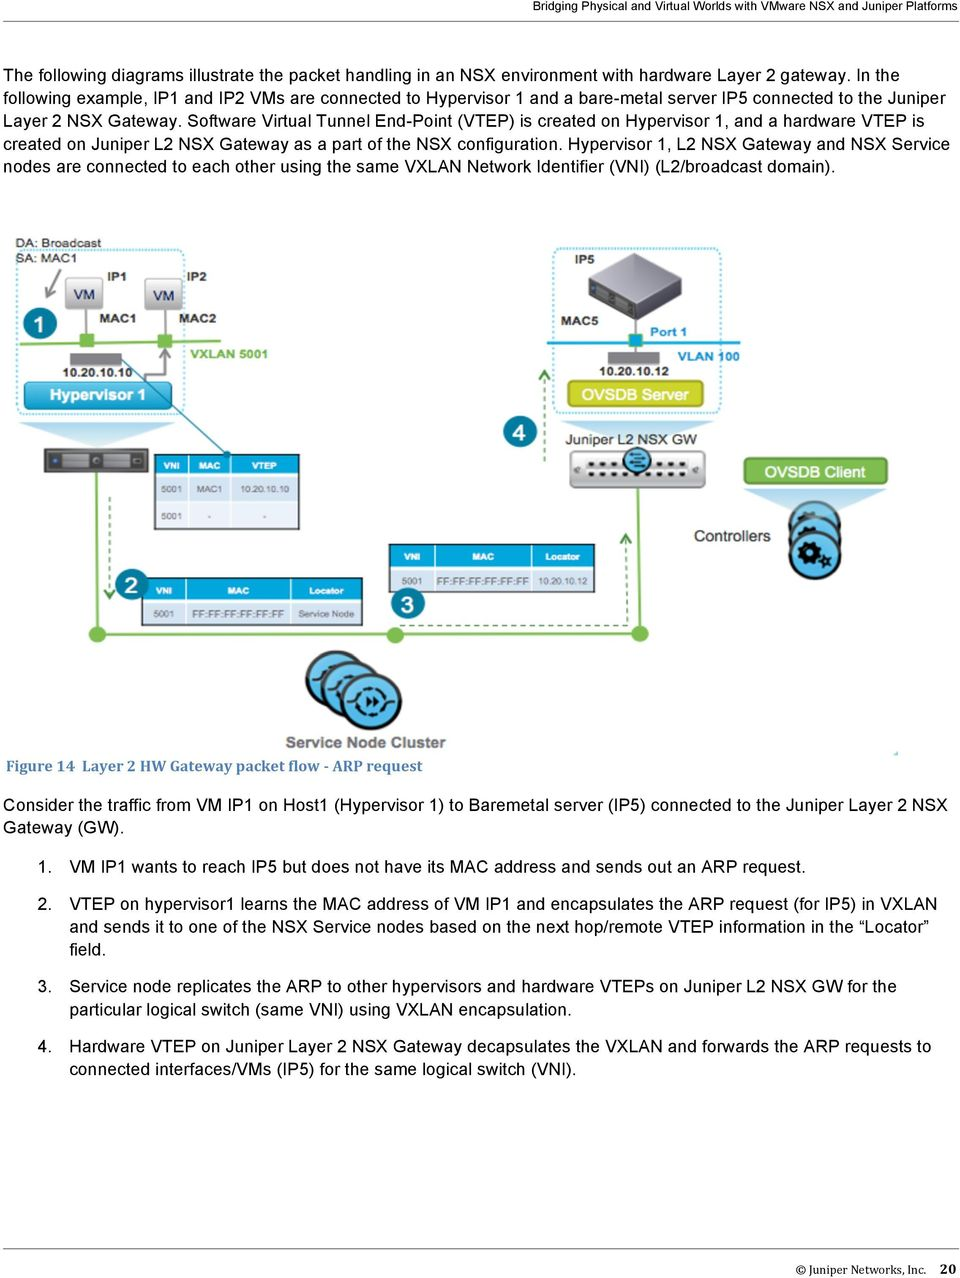 Connecting Physical and Virtual Networks with VMware NSX and